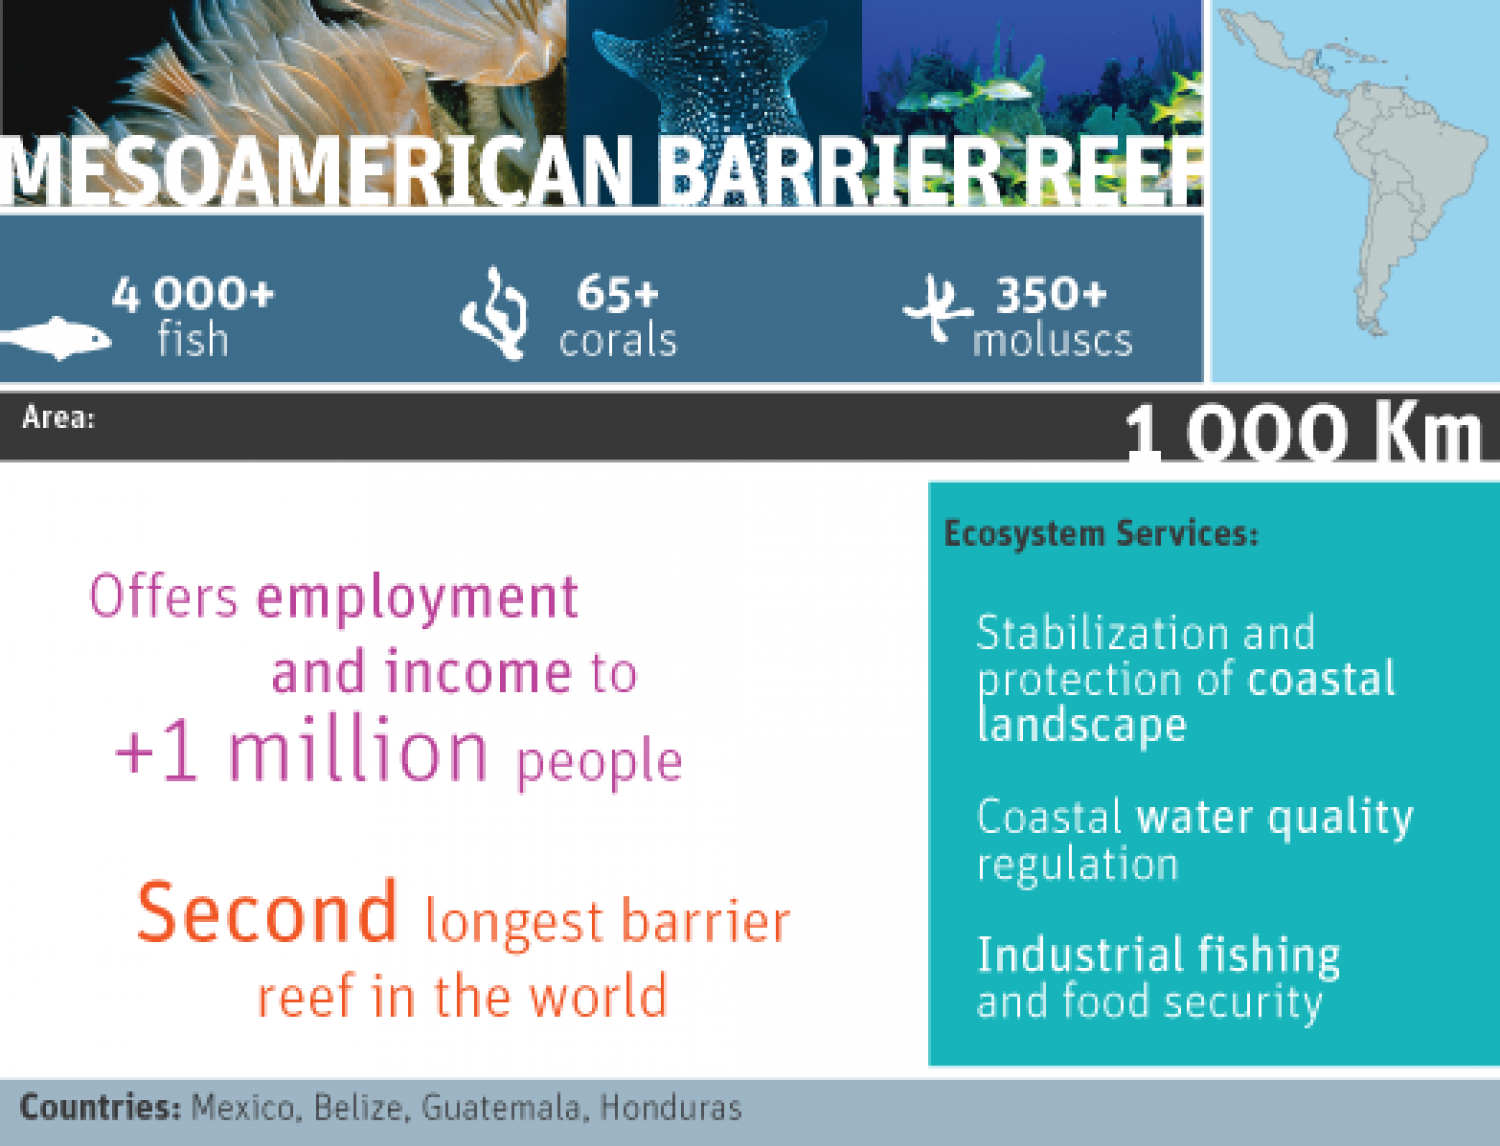 Mesoamerican barrier reef Infographic